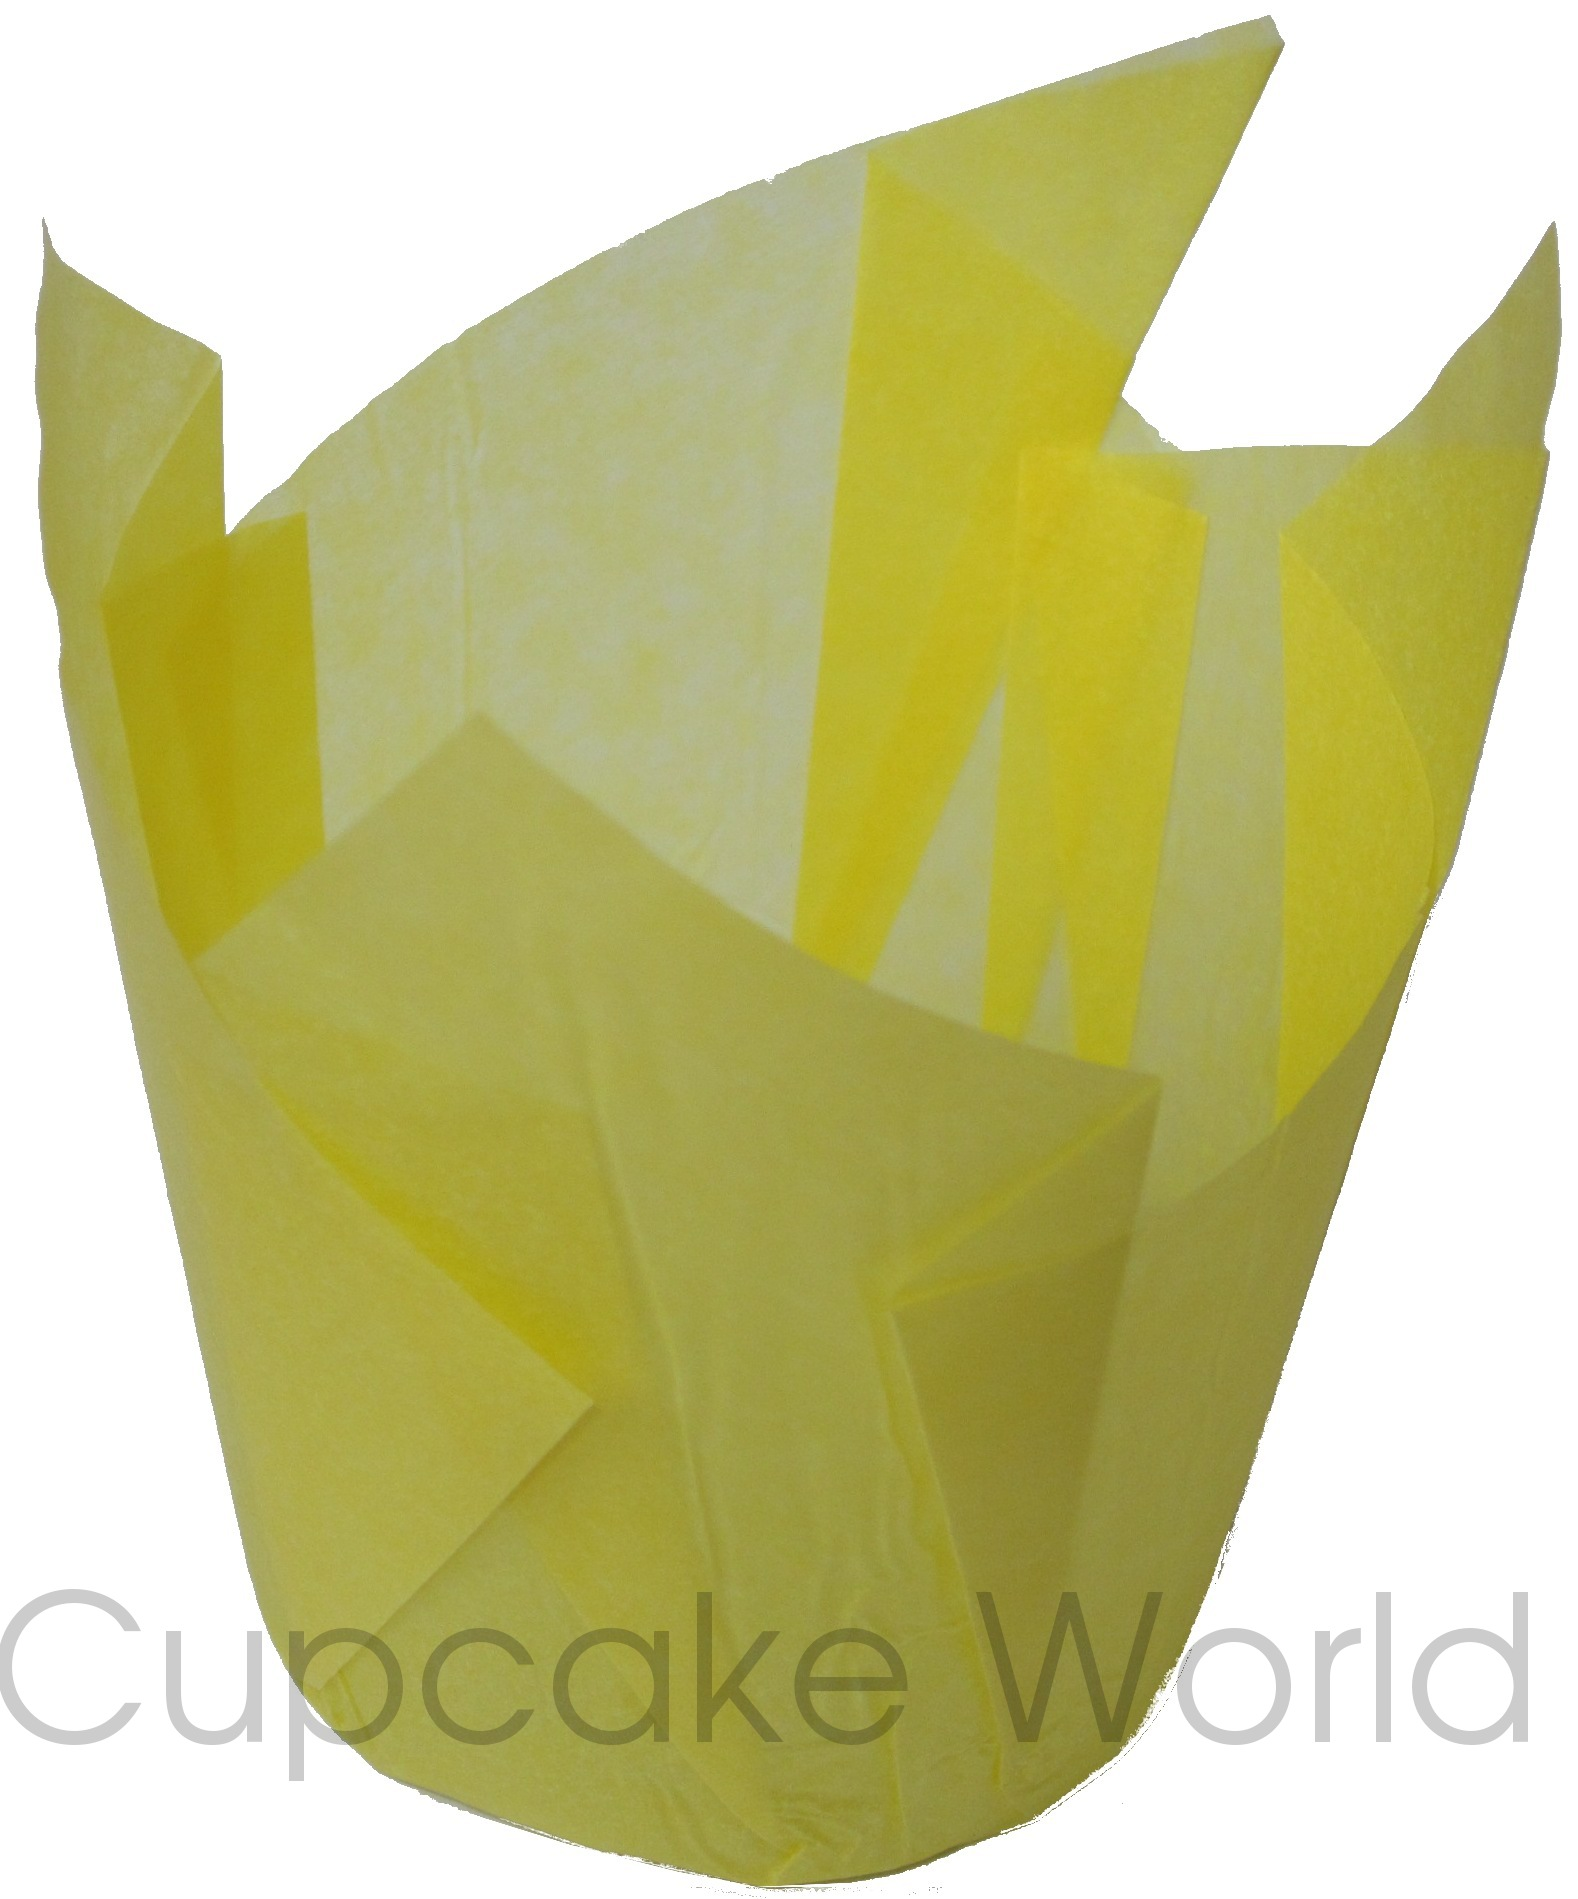 CAFE STYLE PAPER MUFFIN / CUPCAKE CASES YELLOW STANDARD X 100!